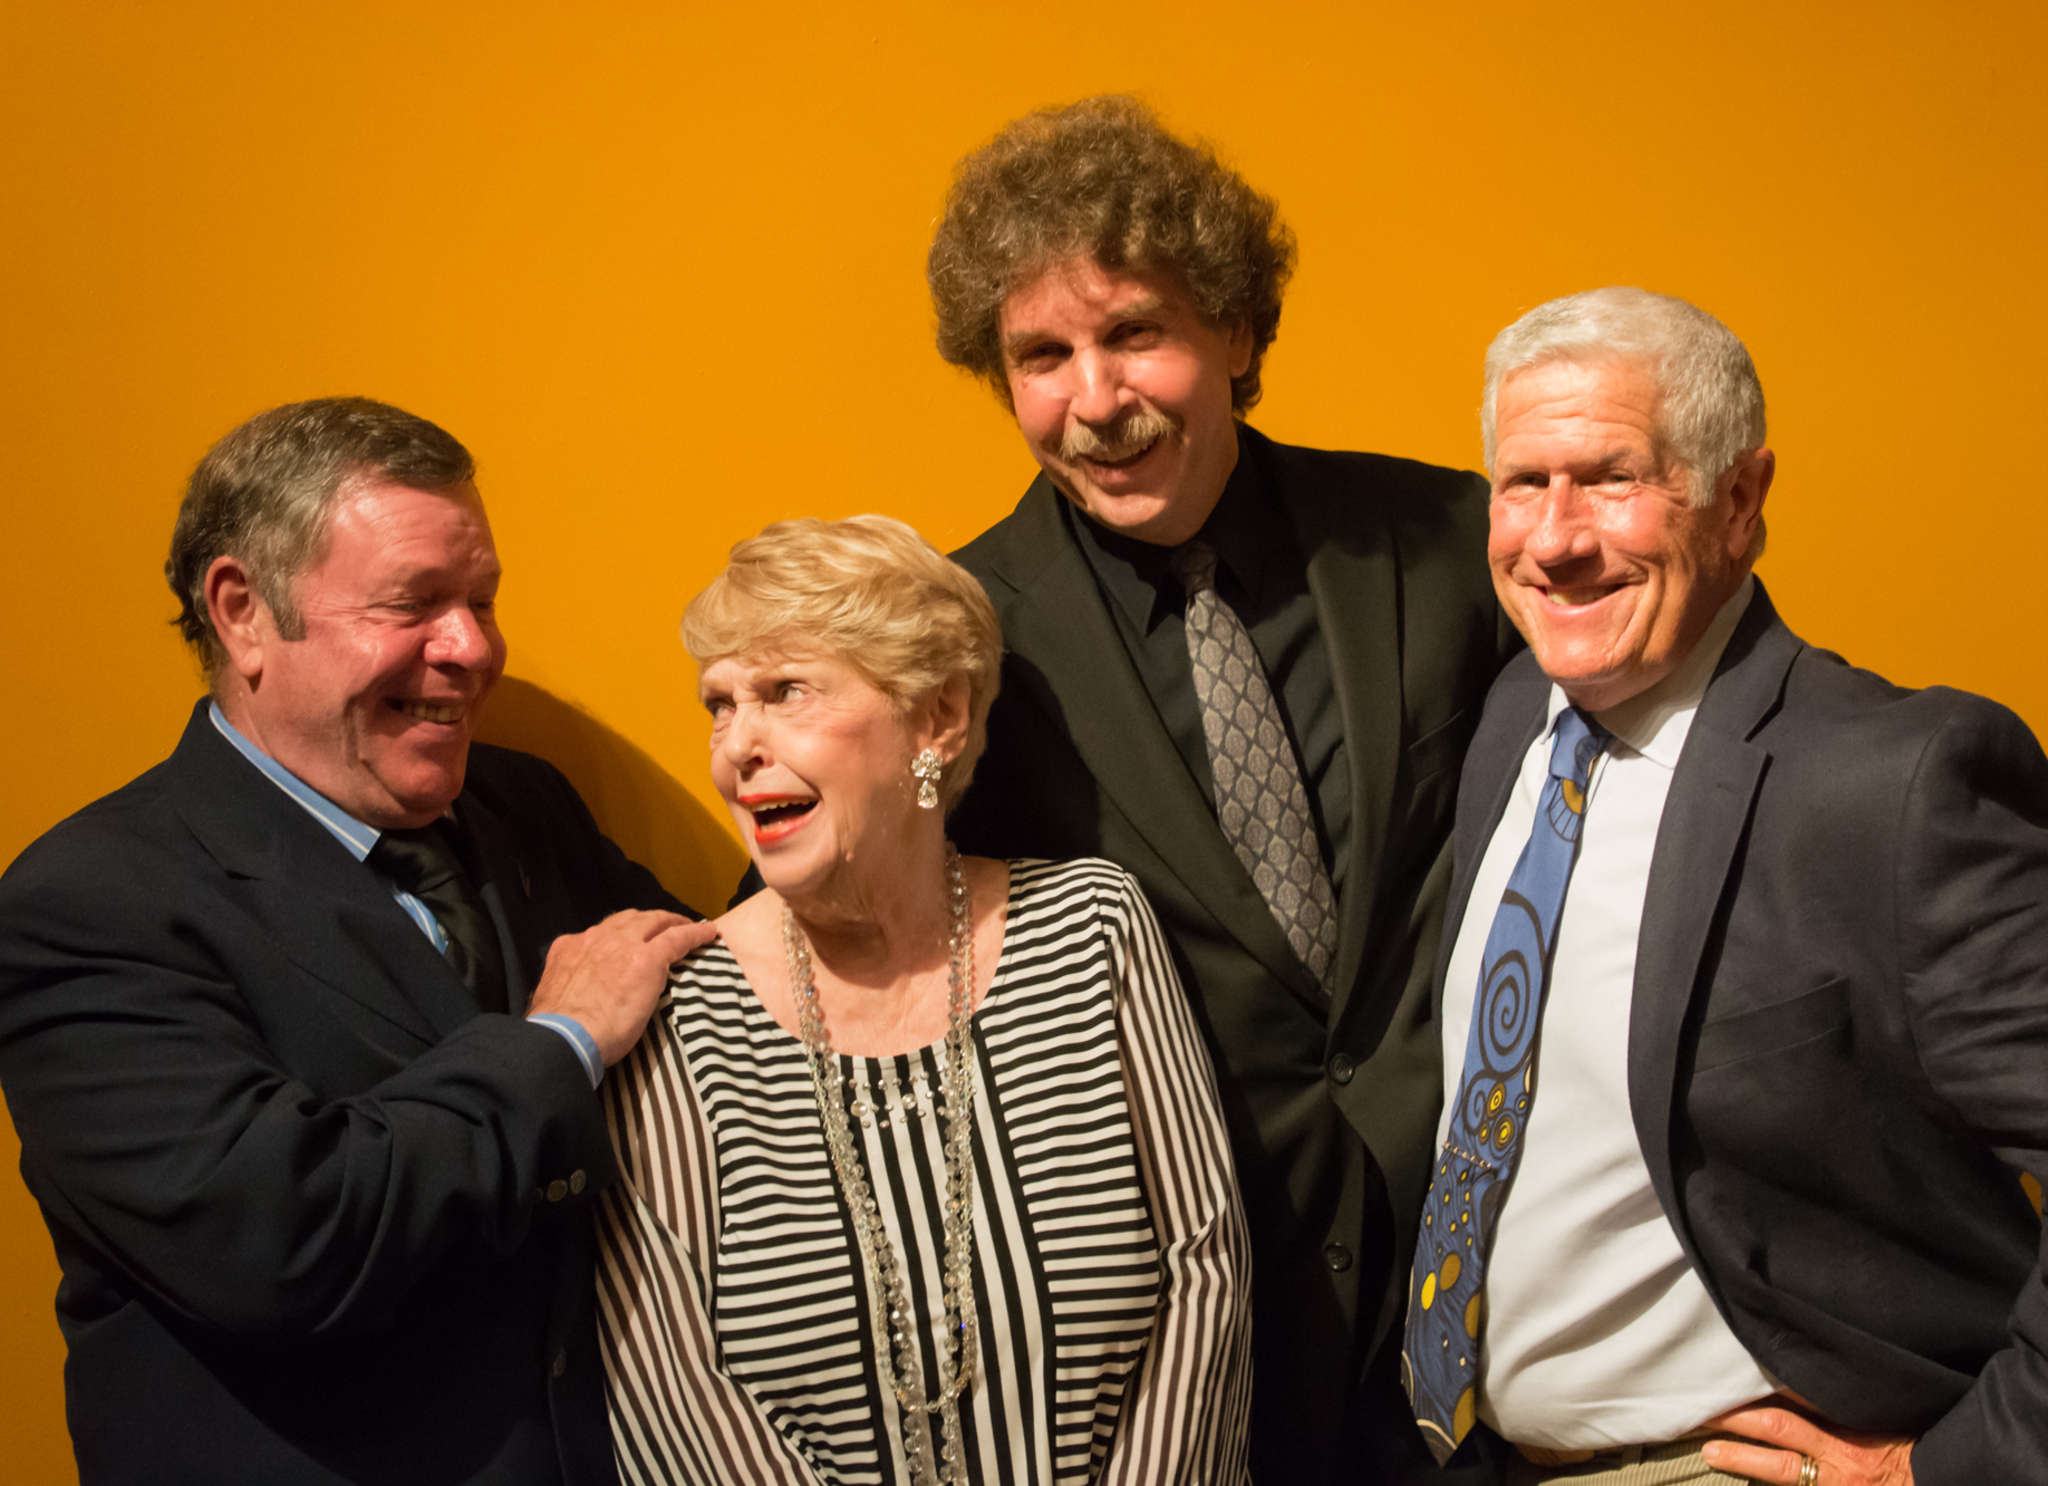 Peggy King and the All-Star Jazz Trio: from left, Bruce Klauber, Peggy King, Bruce Kaminsky, and Andy Kahn. They have released a new album together.